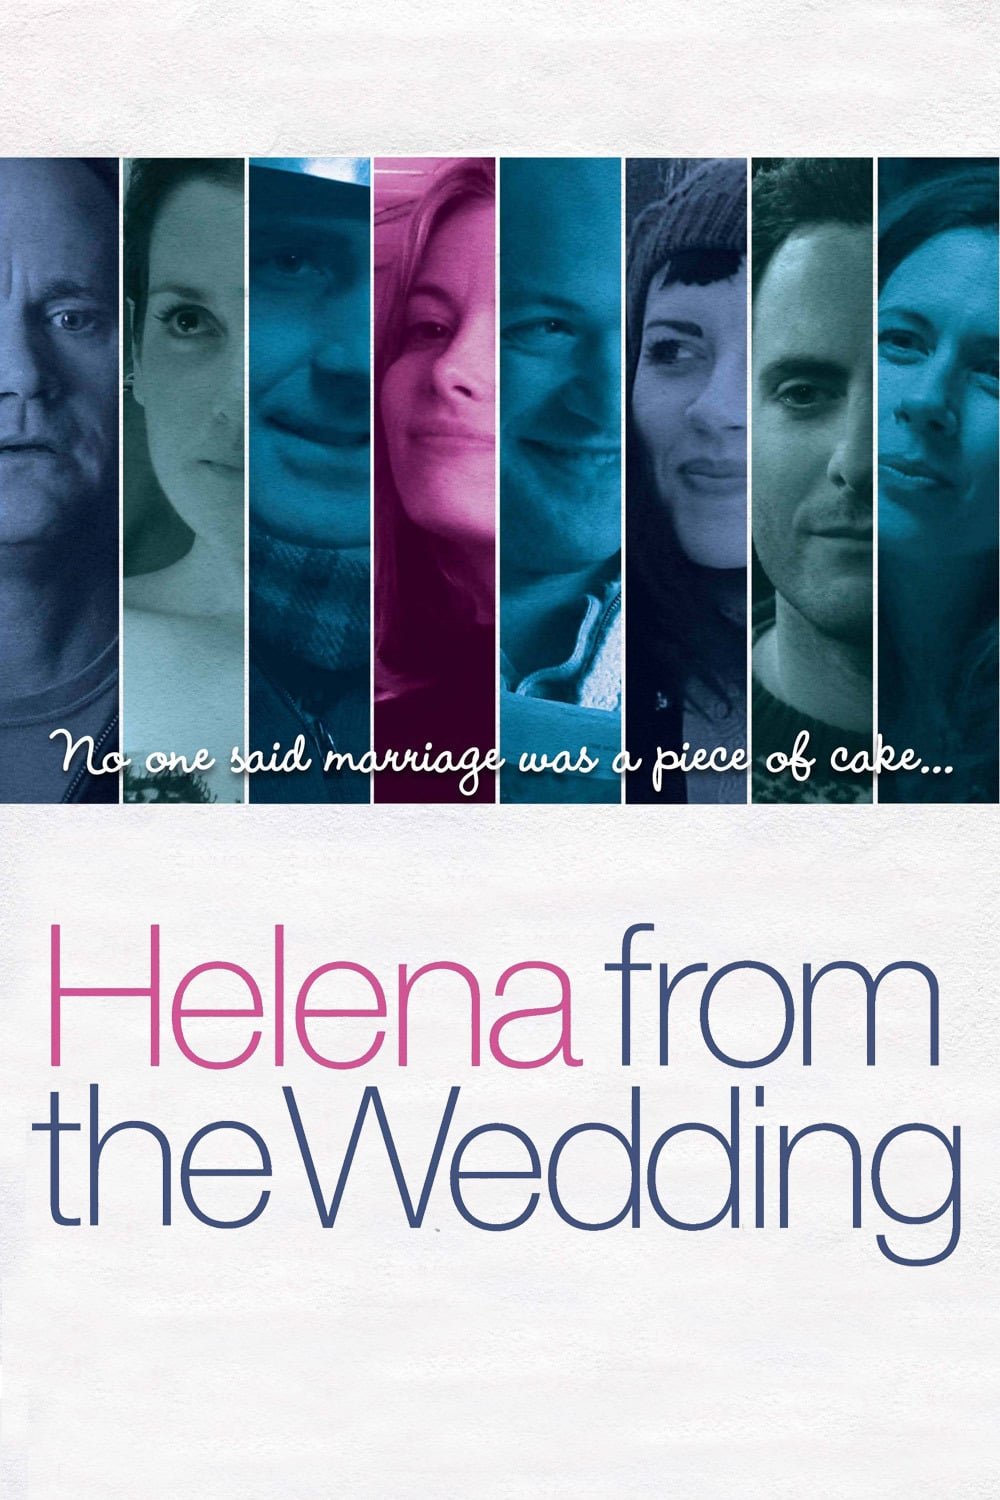 Helena from the Wedding, 2010